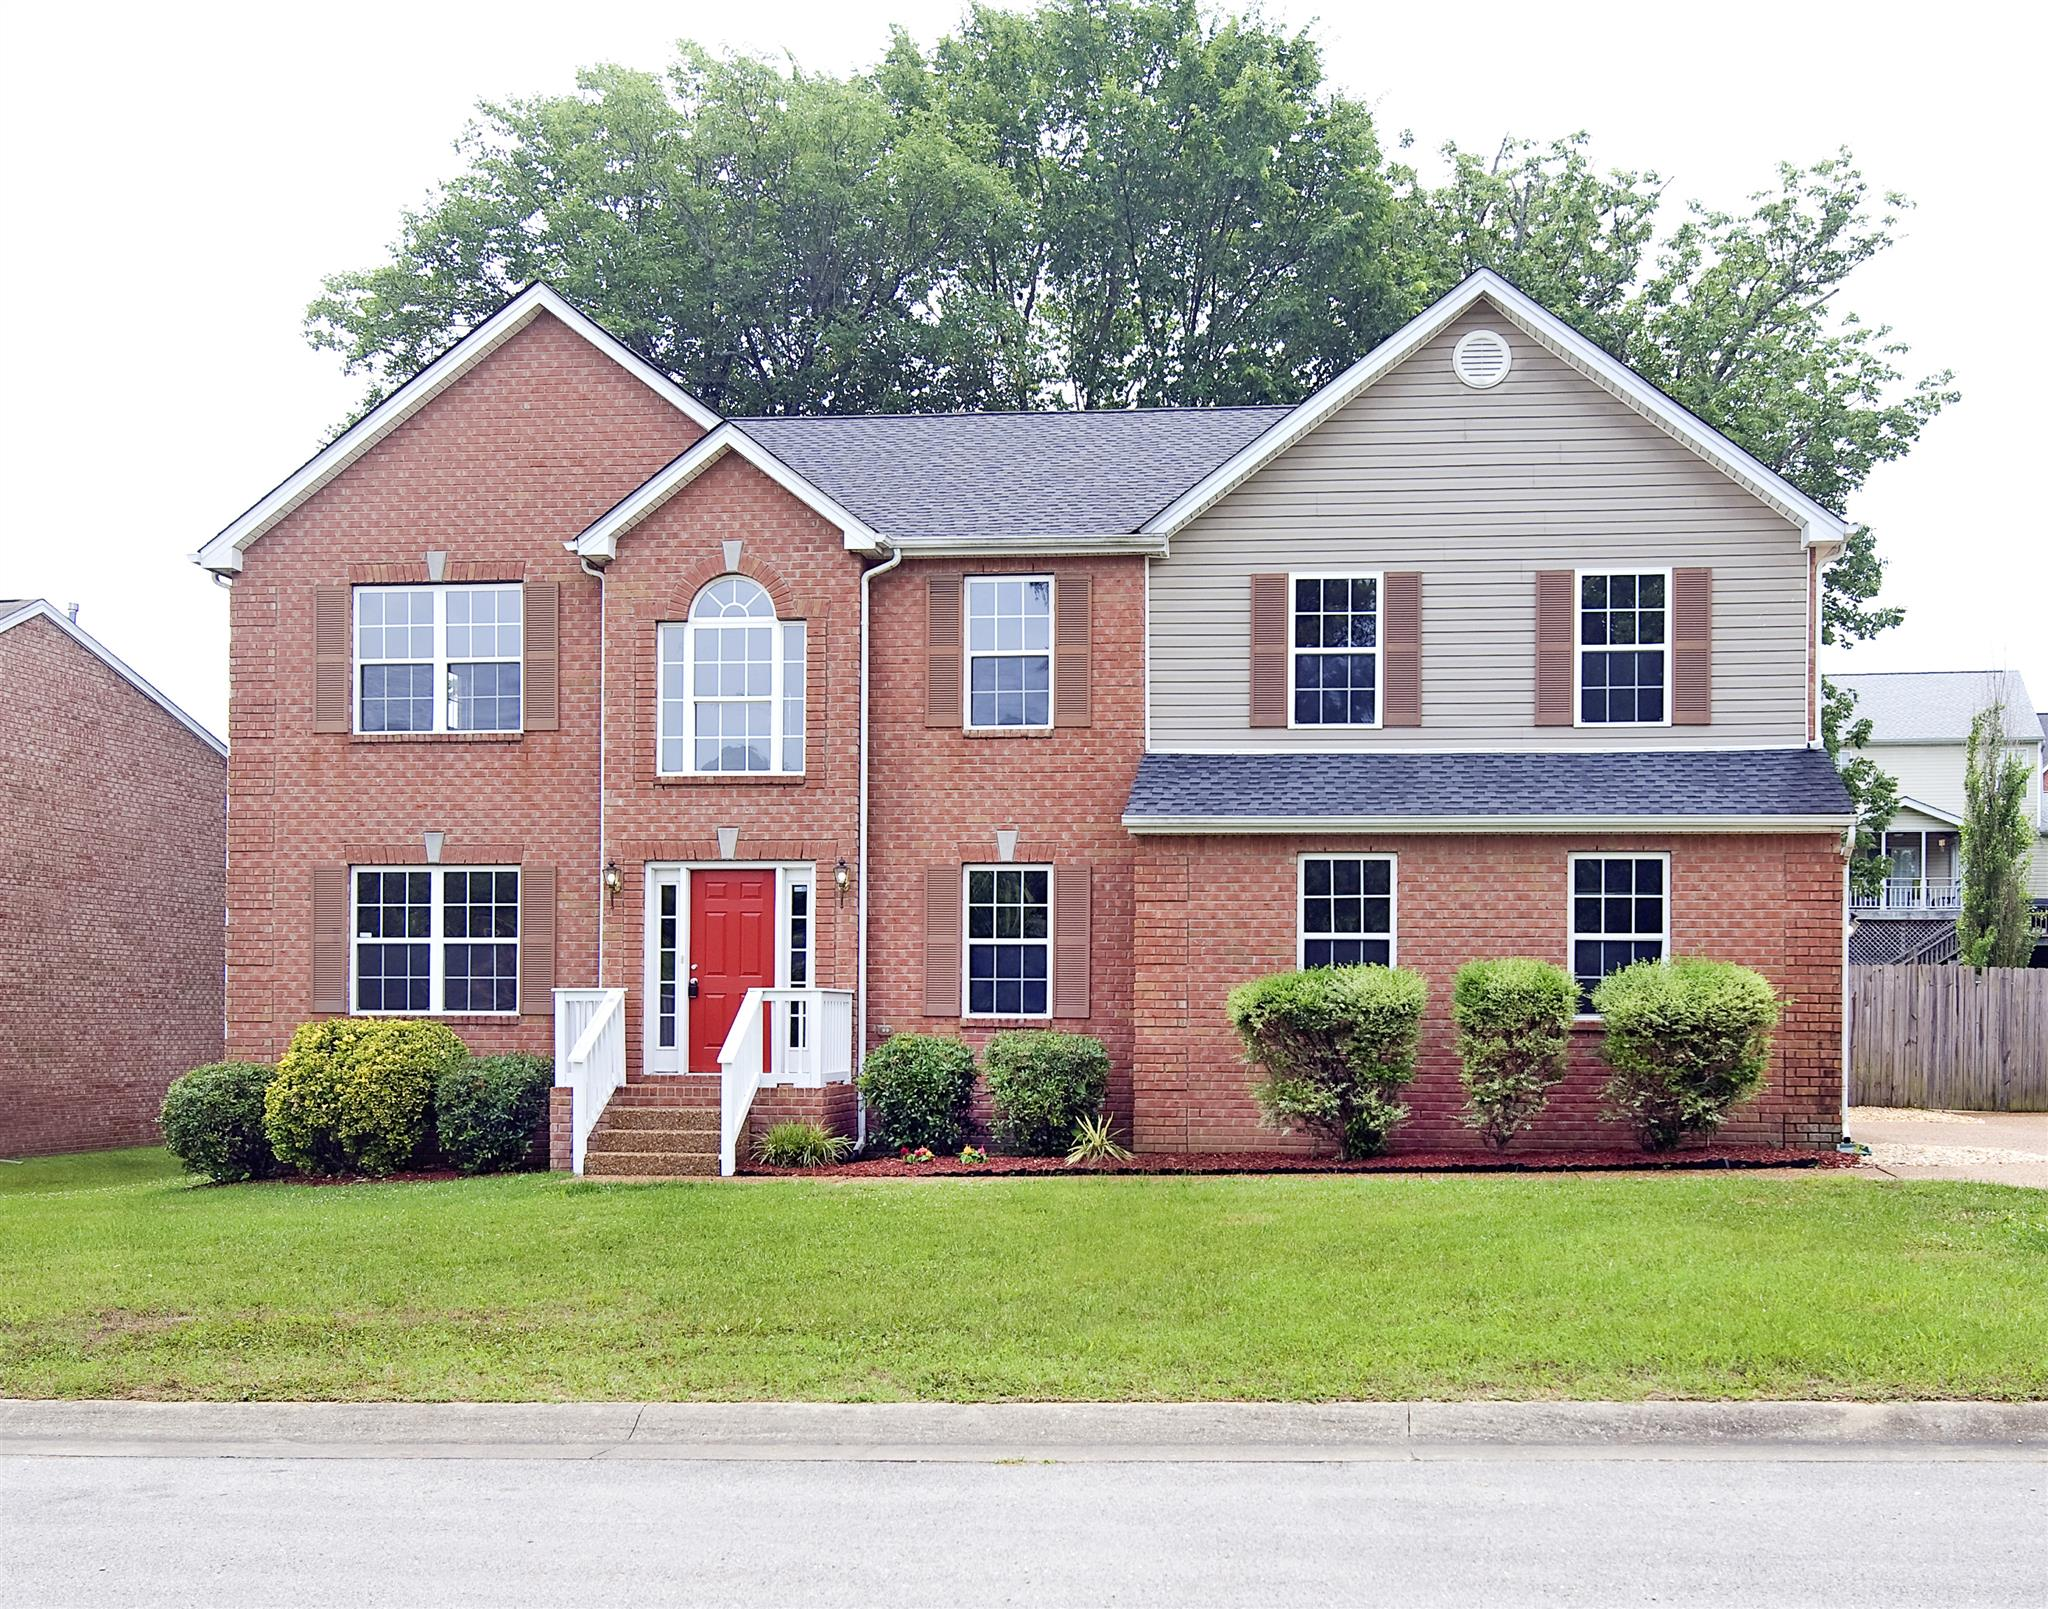 4005 Timber Ridge Ct, Mount Juliet in Wilson County County, TN 37122 Home for Sale